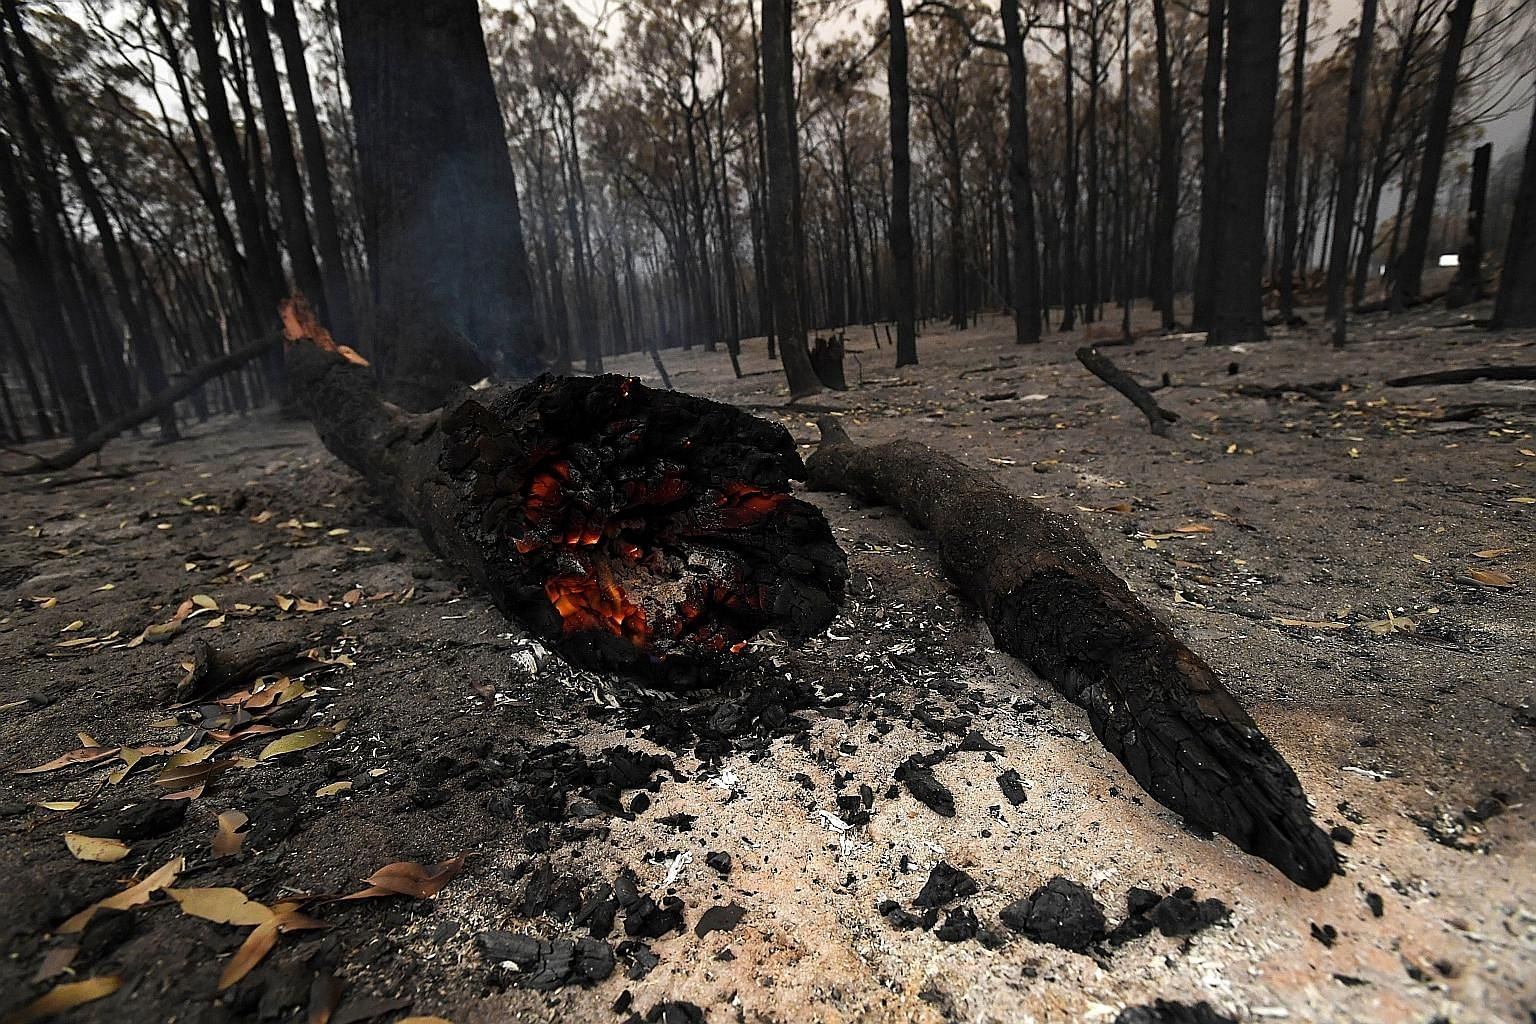 A smouldering tree in Bruthen South, Victoria. The current bush fire crisis has triggered a national call for tougher climate policies and is likely to reshape how and where people live and how fires in Australia will be fought in the future.